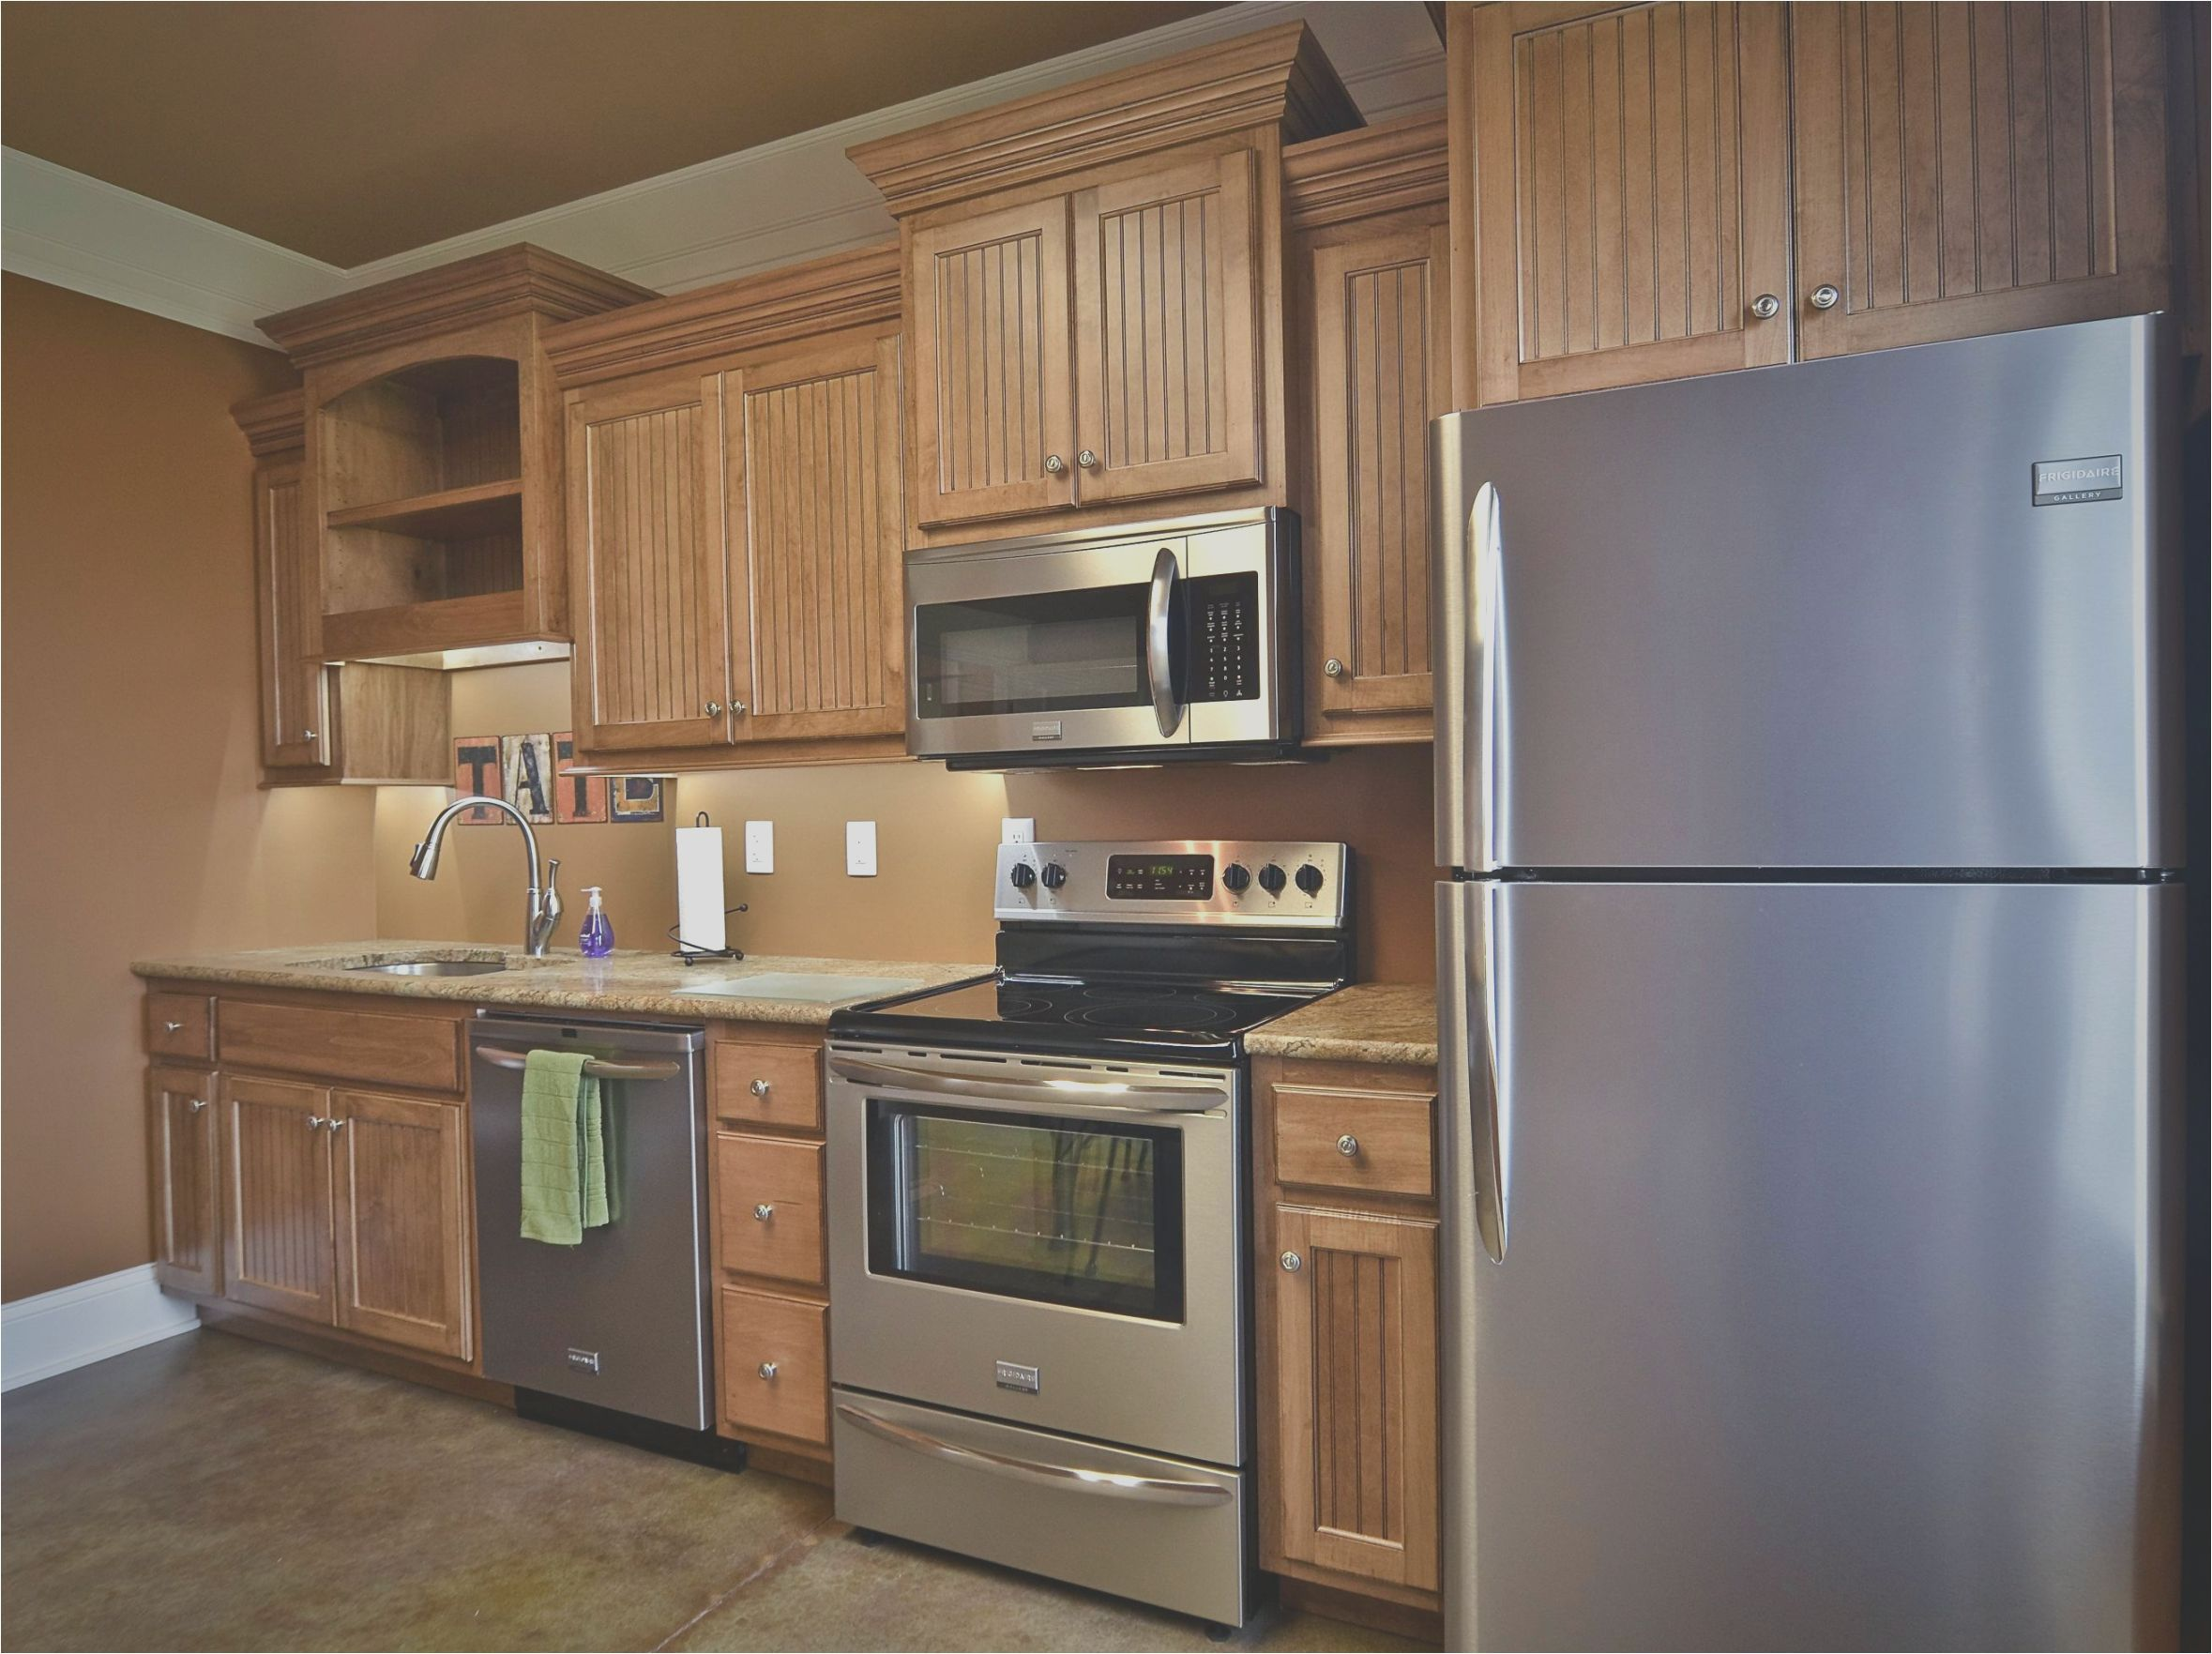 48 Latest Cleaning Wood Kitchen Cabinets Design By Henry Bishop For Detail And More You Can F Stained Kitchen Cabinets Wood Kitchen Cabinets Staining Cabinets